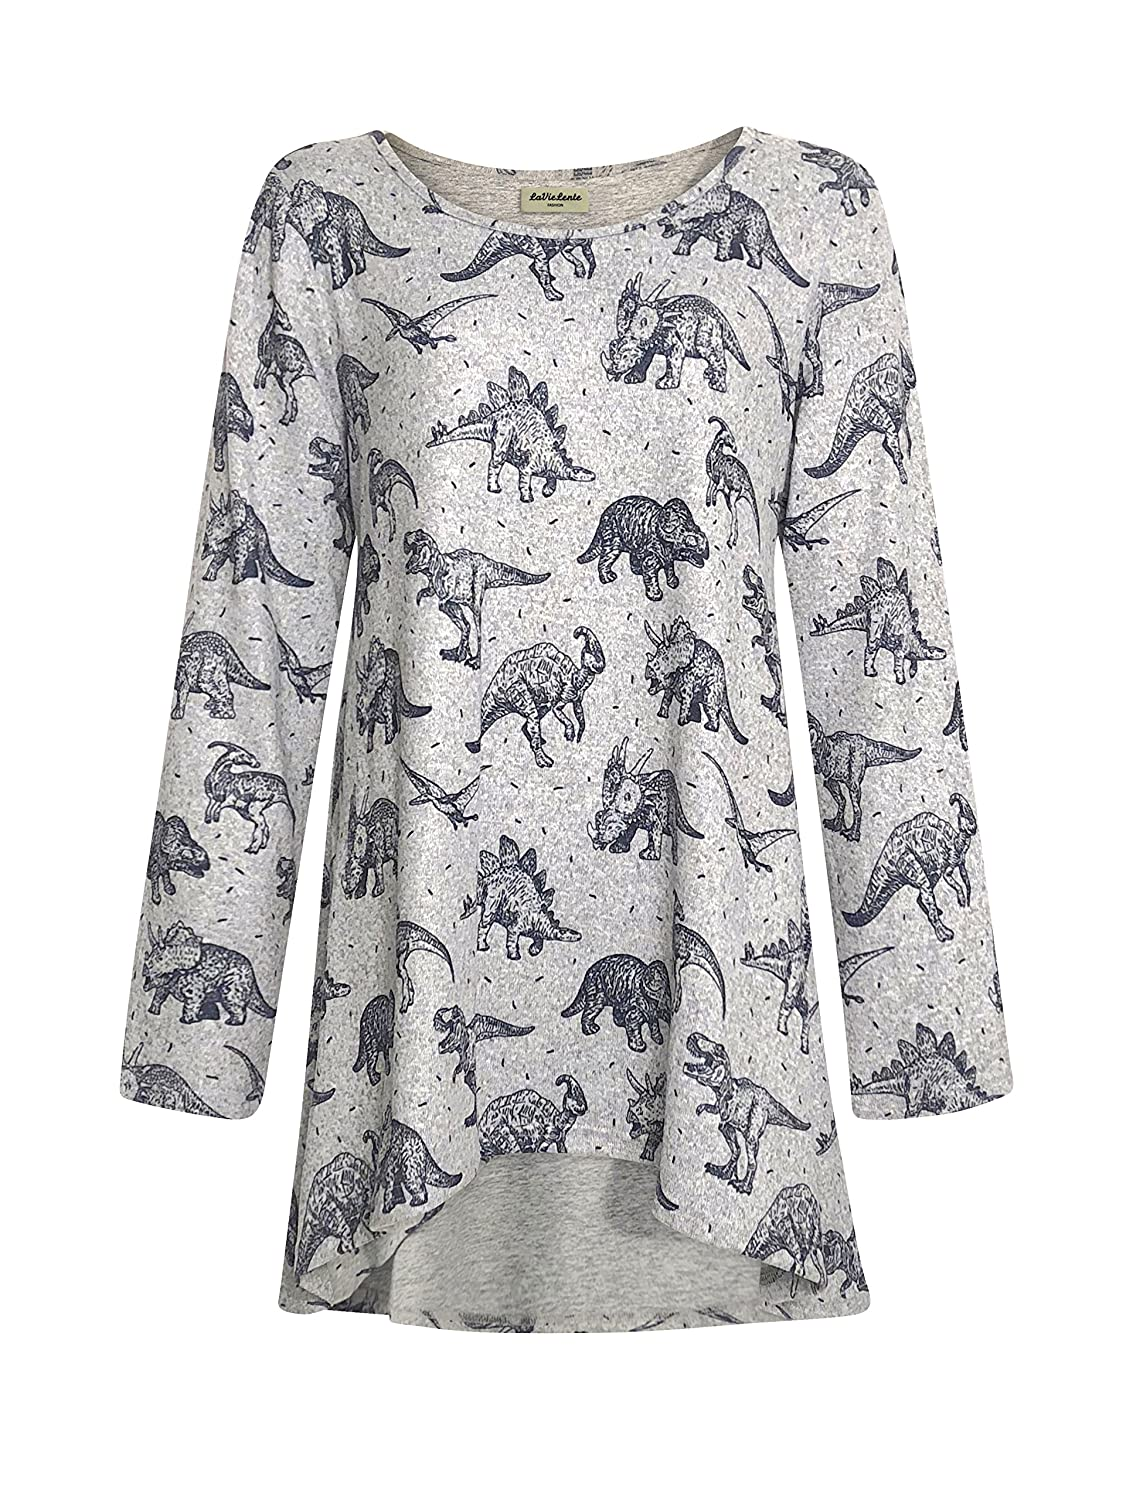 Dinosaur LaVieLente long sleeve jersey knit hilow top in bird and dinosaur print